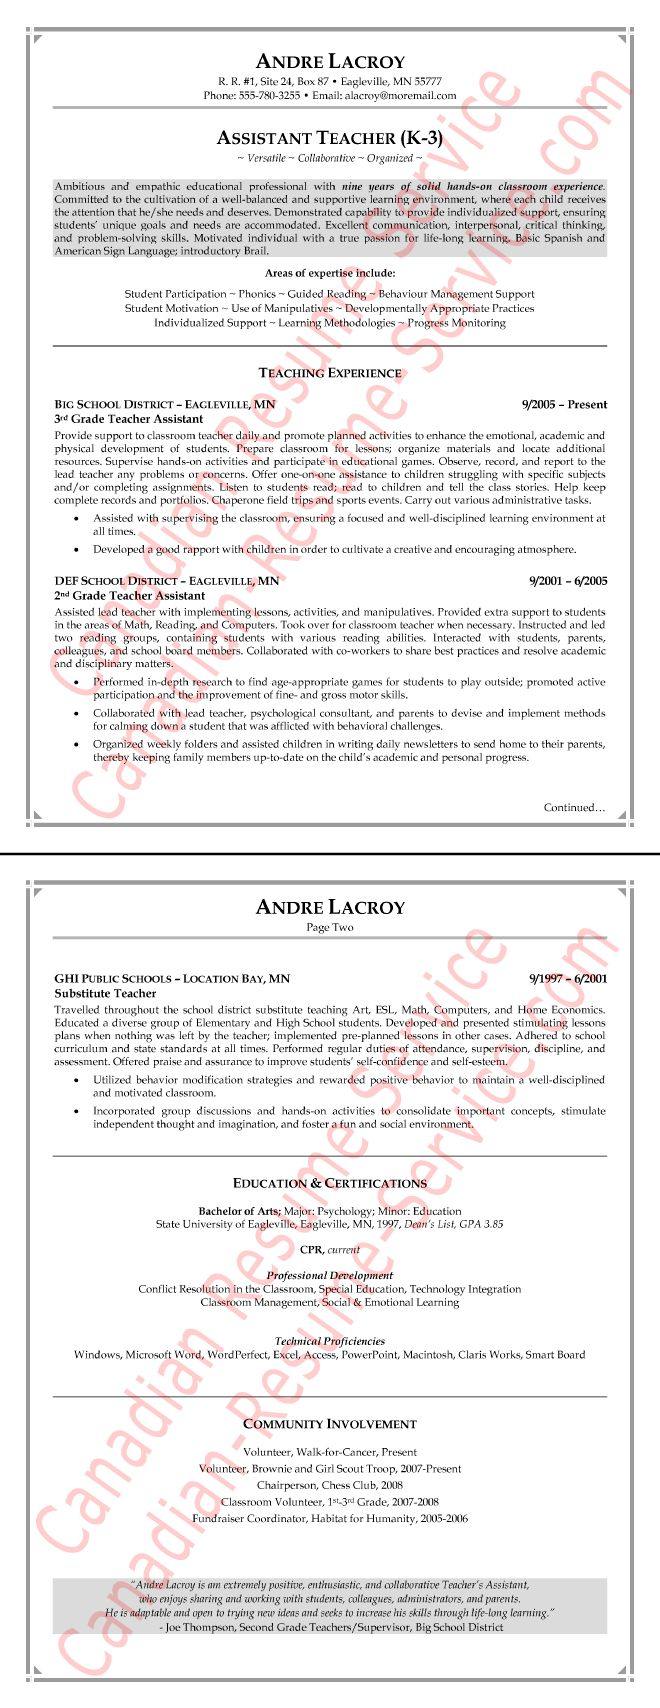 How To Spice Up Resume For Career Cange